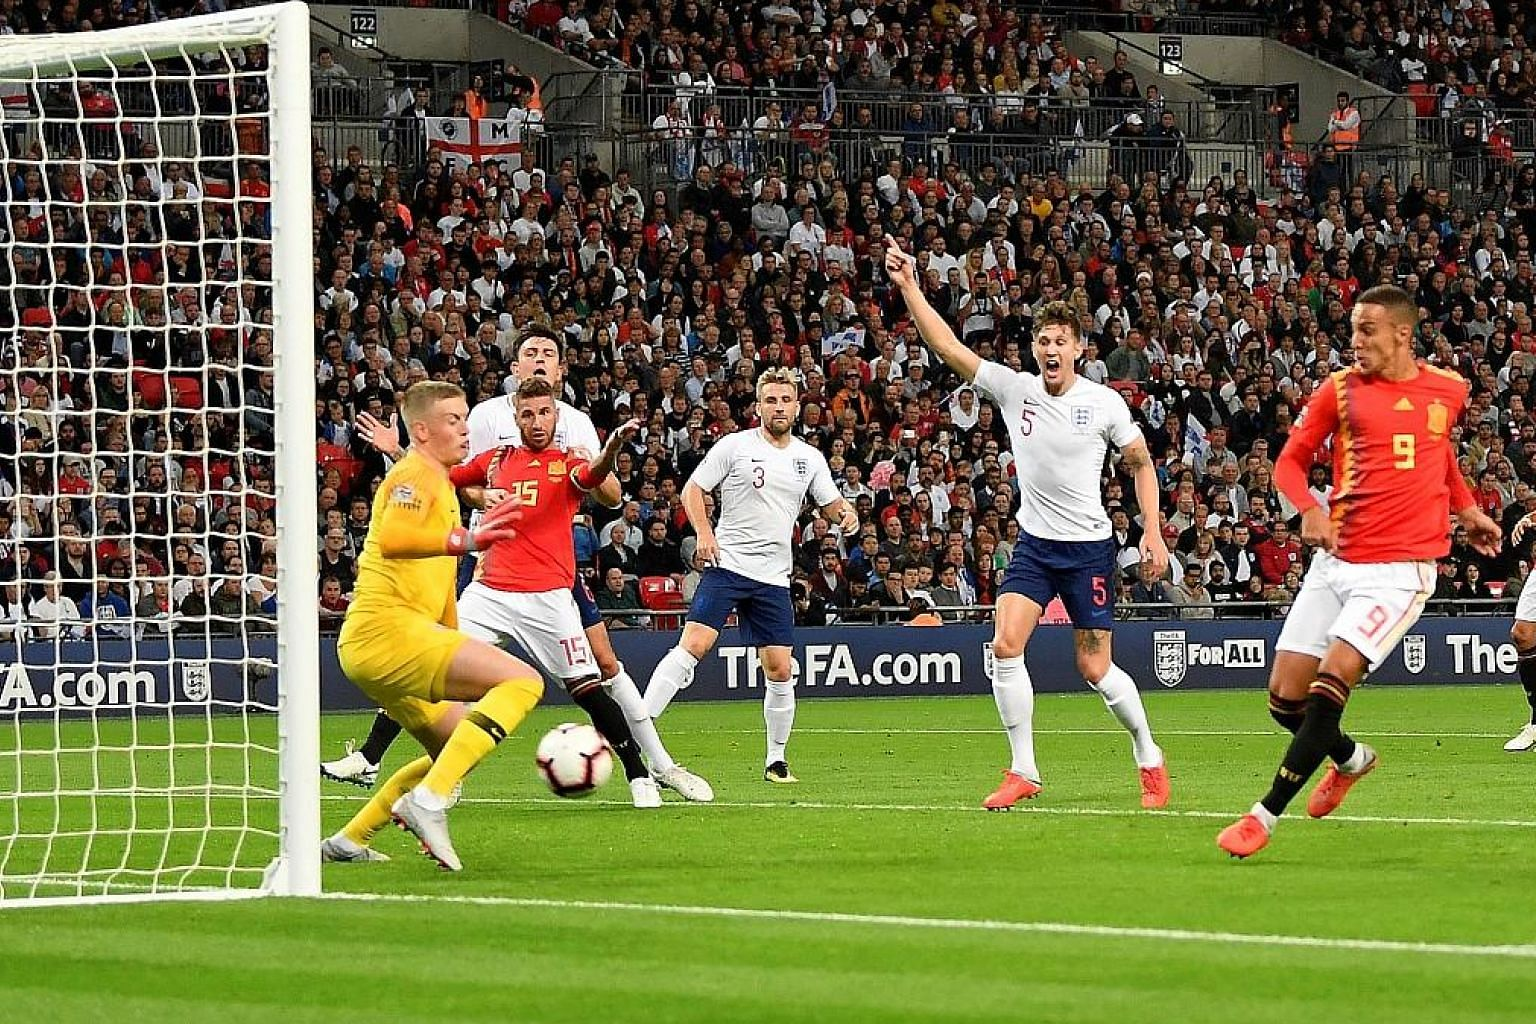 Rodrigo (No. 9) scoring Spain's second goal against England, who had Danny Welbeck's late strike ruled out by referee Danny Makkelie.